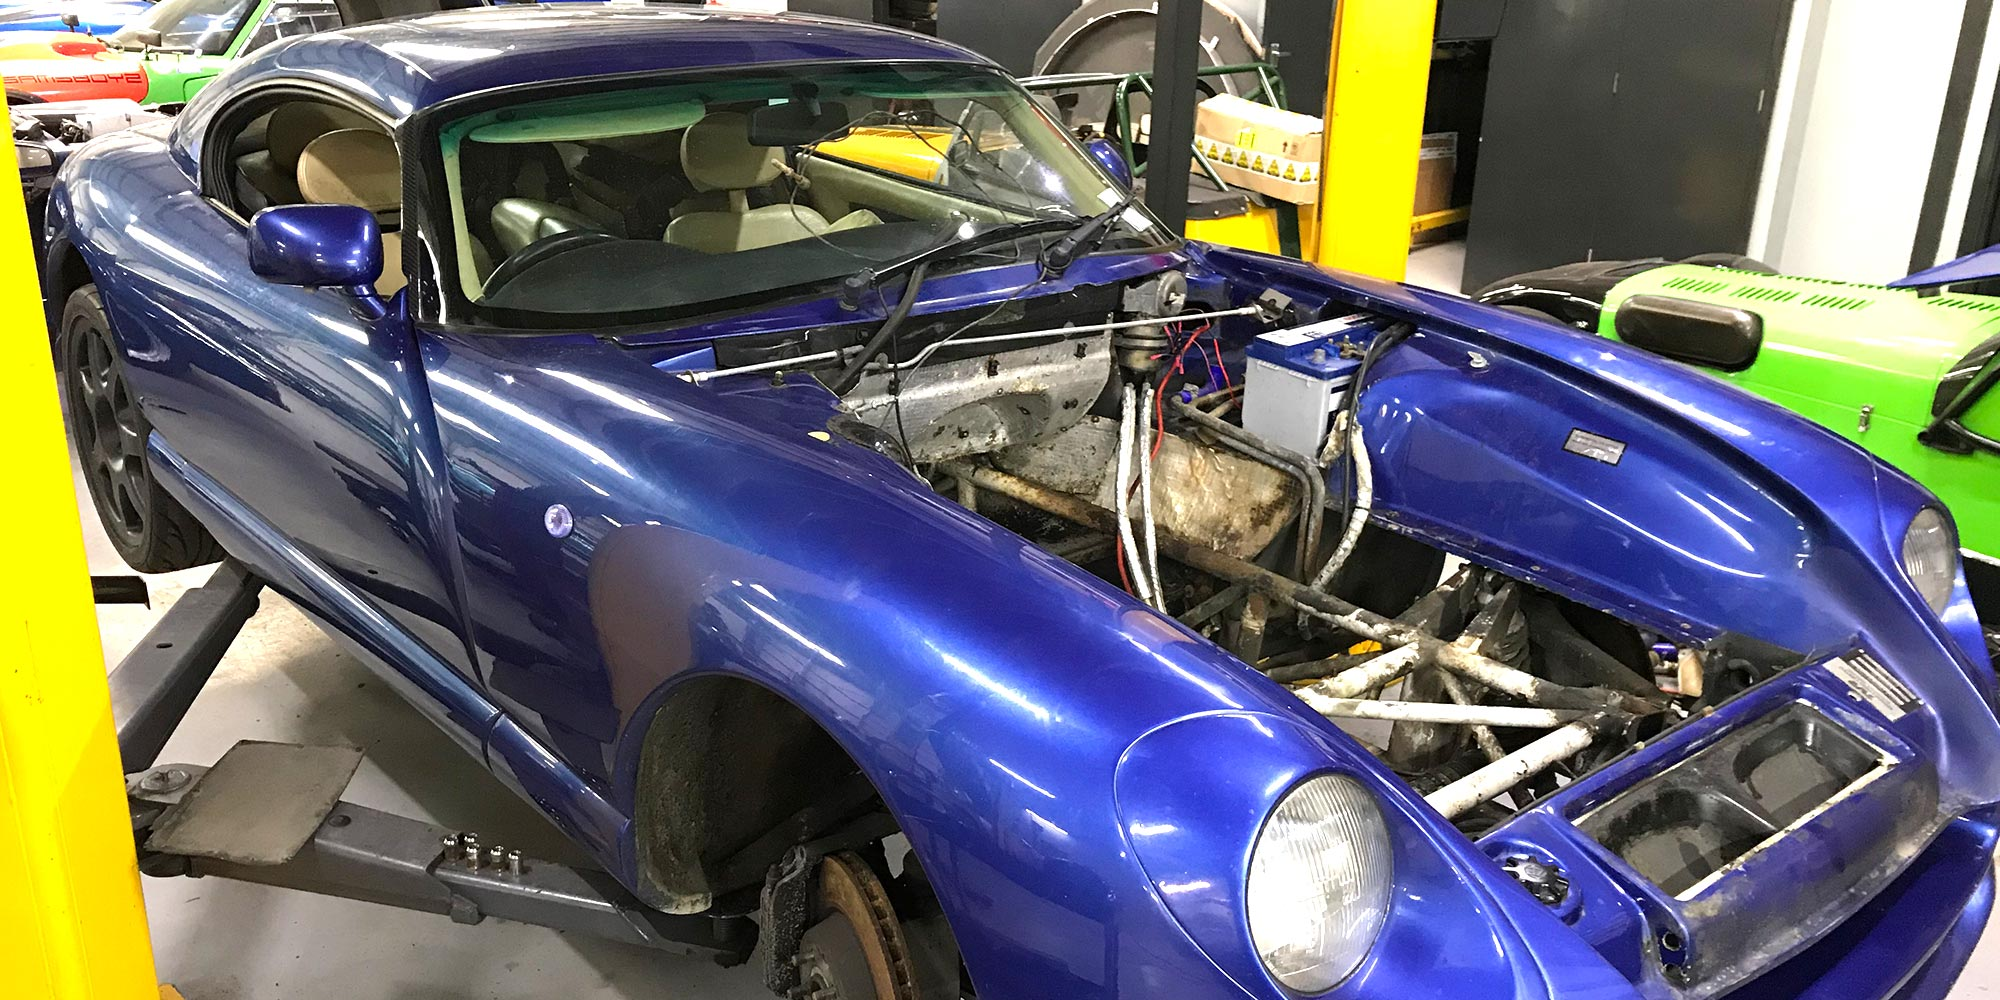 blue tvr cerbera with engine removed on ramp at topcats racing workshop